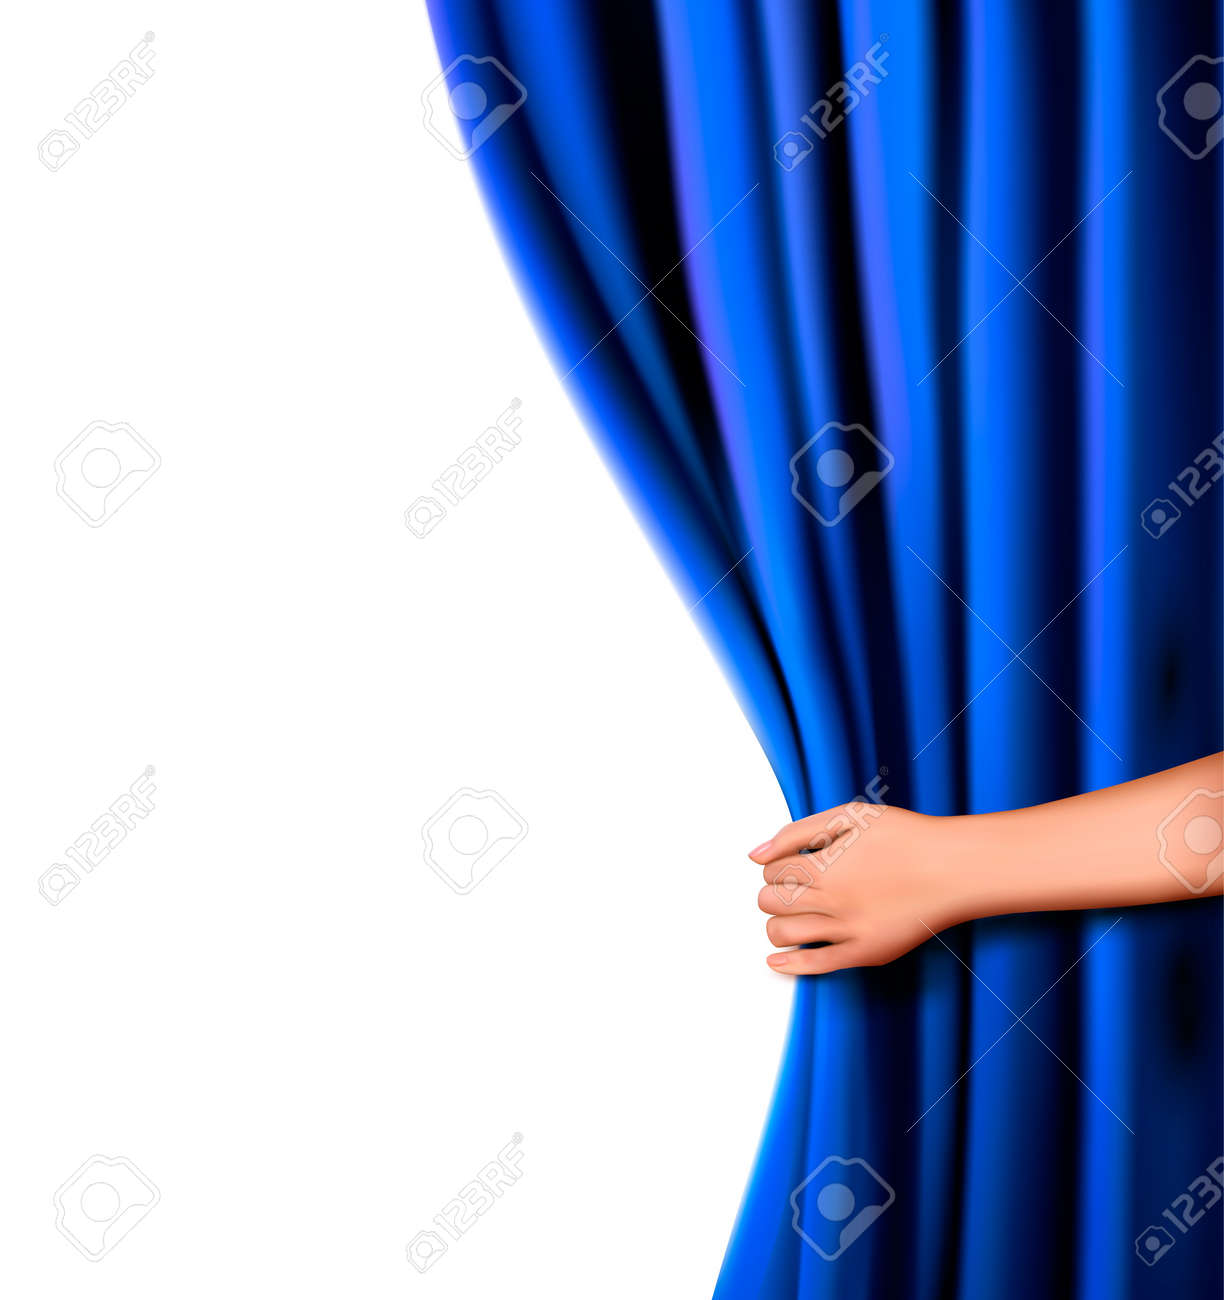 Blue curtain backdrop - Light Blue Stage Curtain Blue Curtain Backdrop Blue Stage Curtain Background Curtain Stage Background With